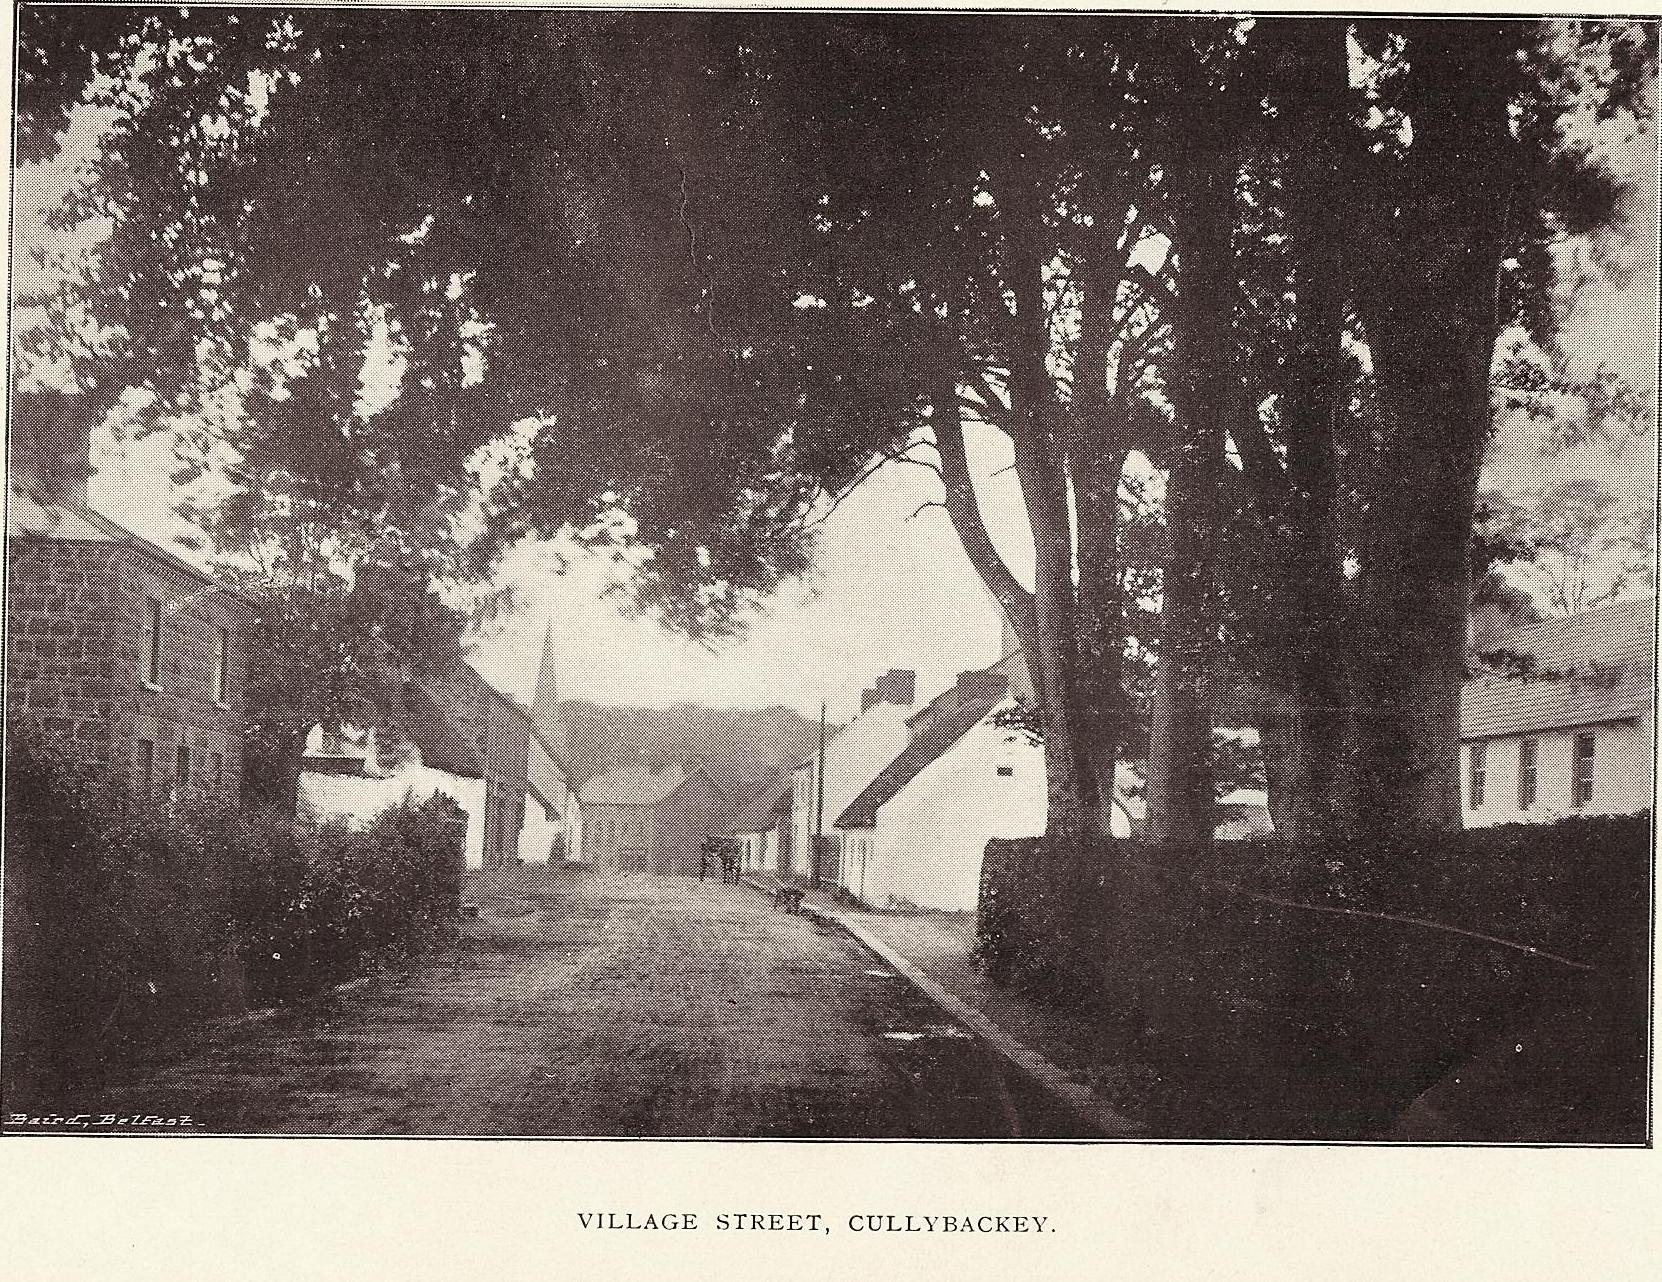 village-street-cullybackey-old